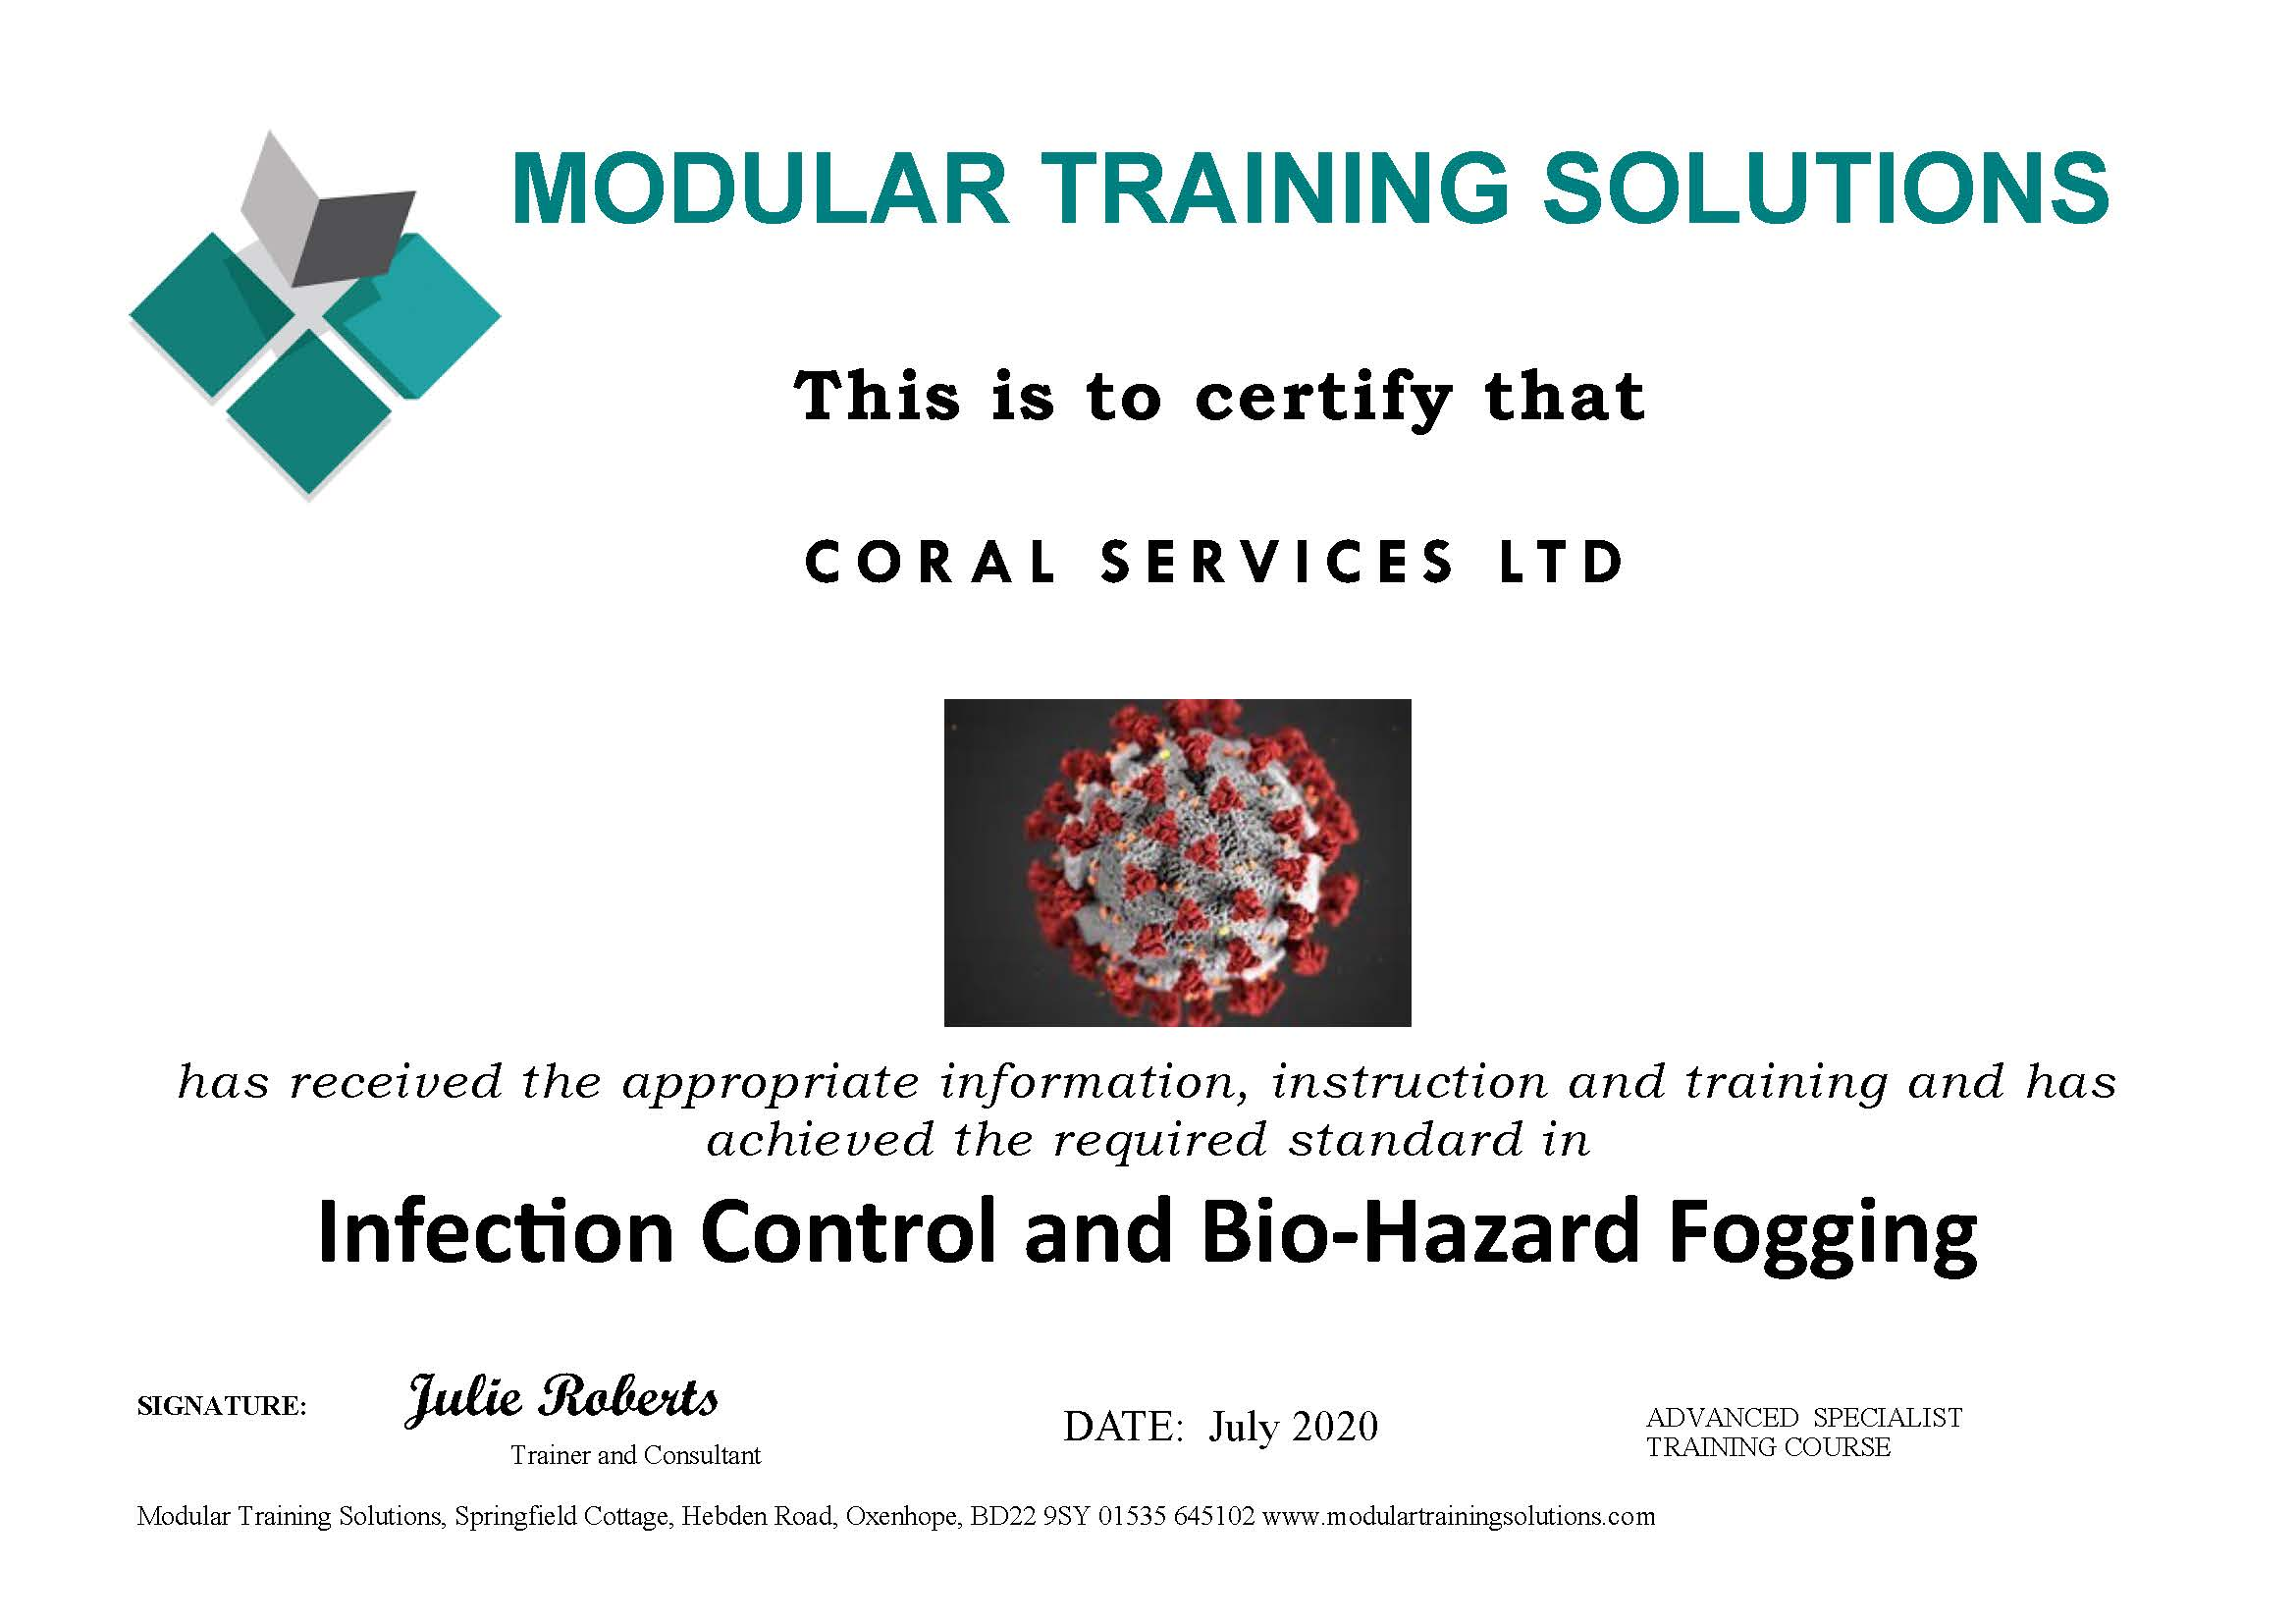 Disinfection Control and Bio-Hazard Fogging Certificate